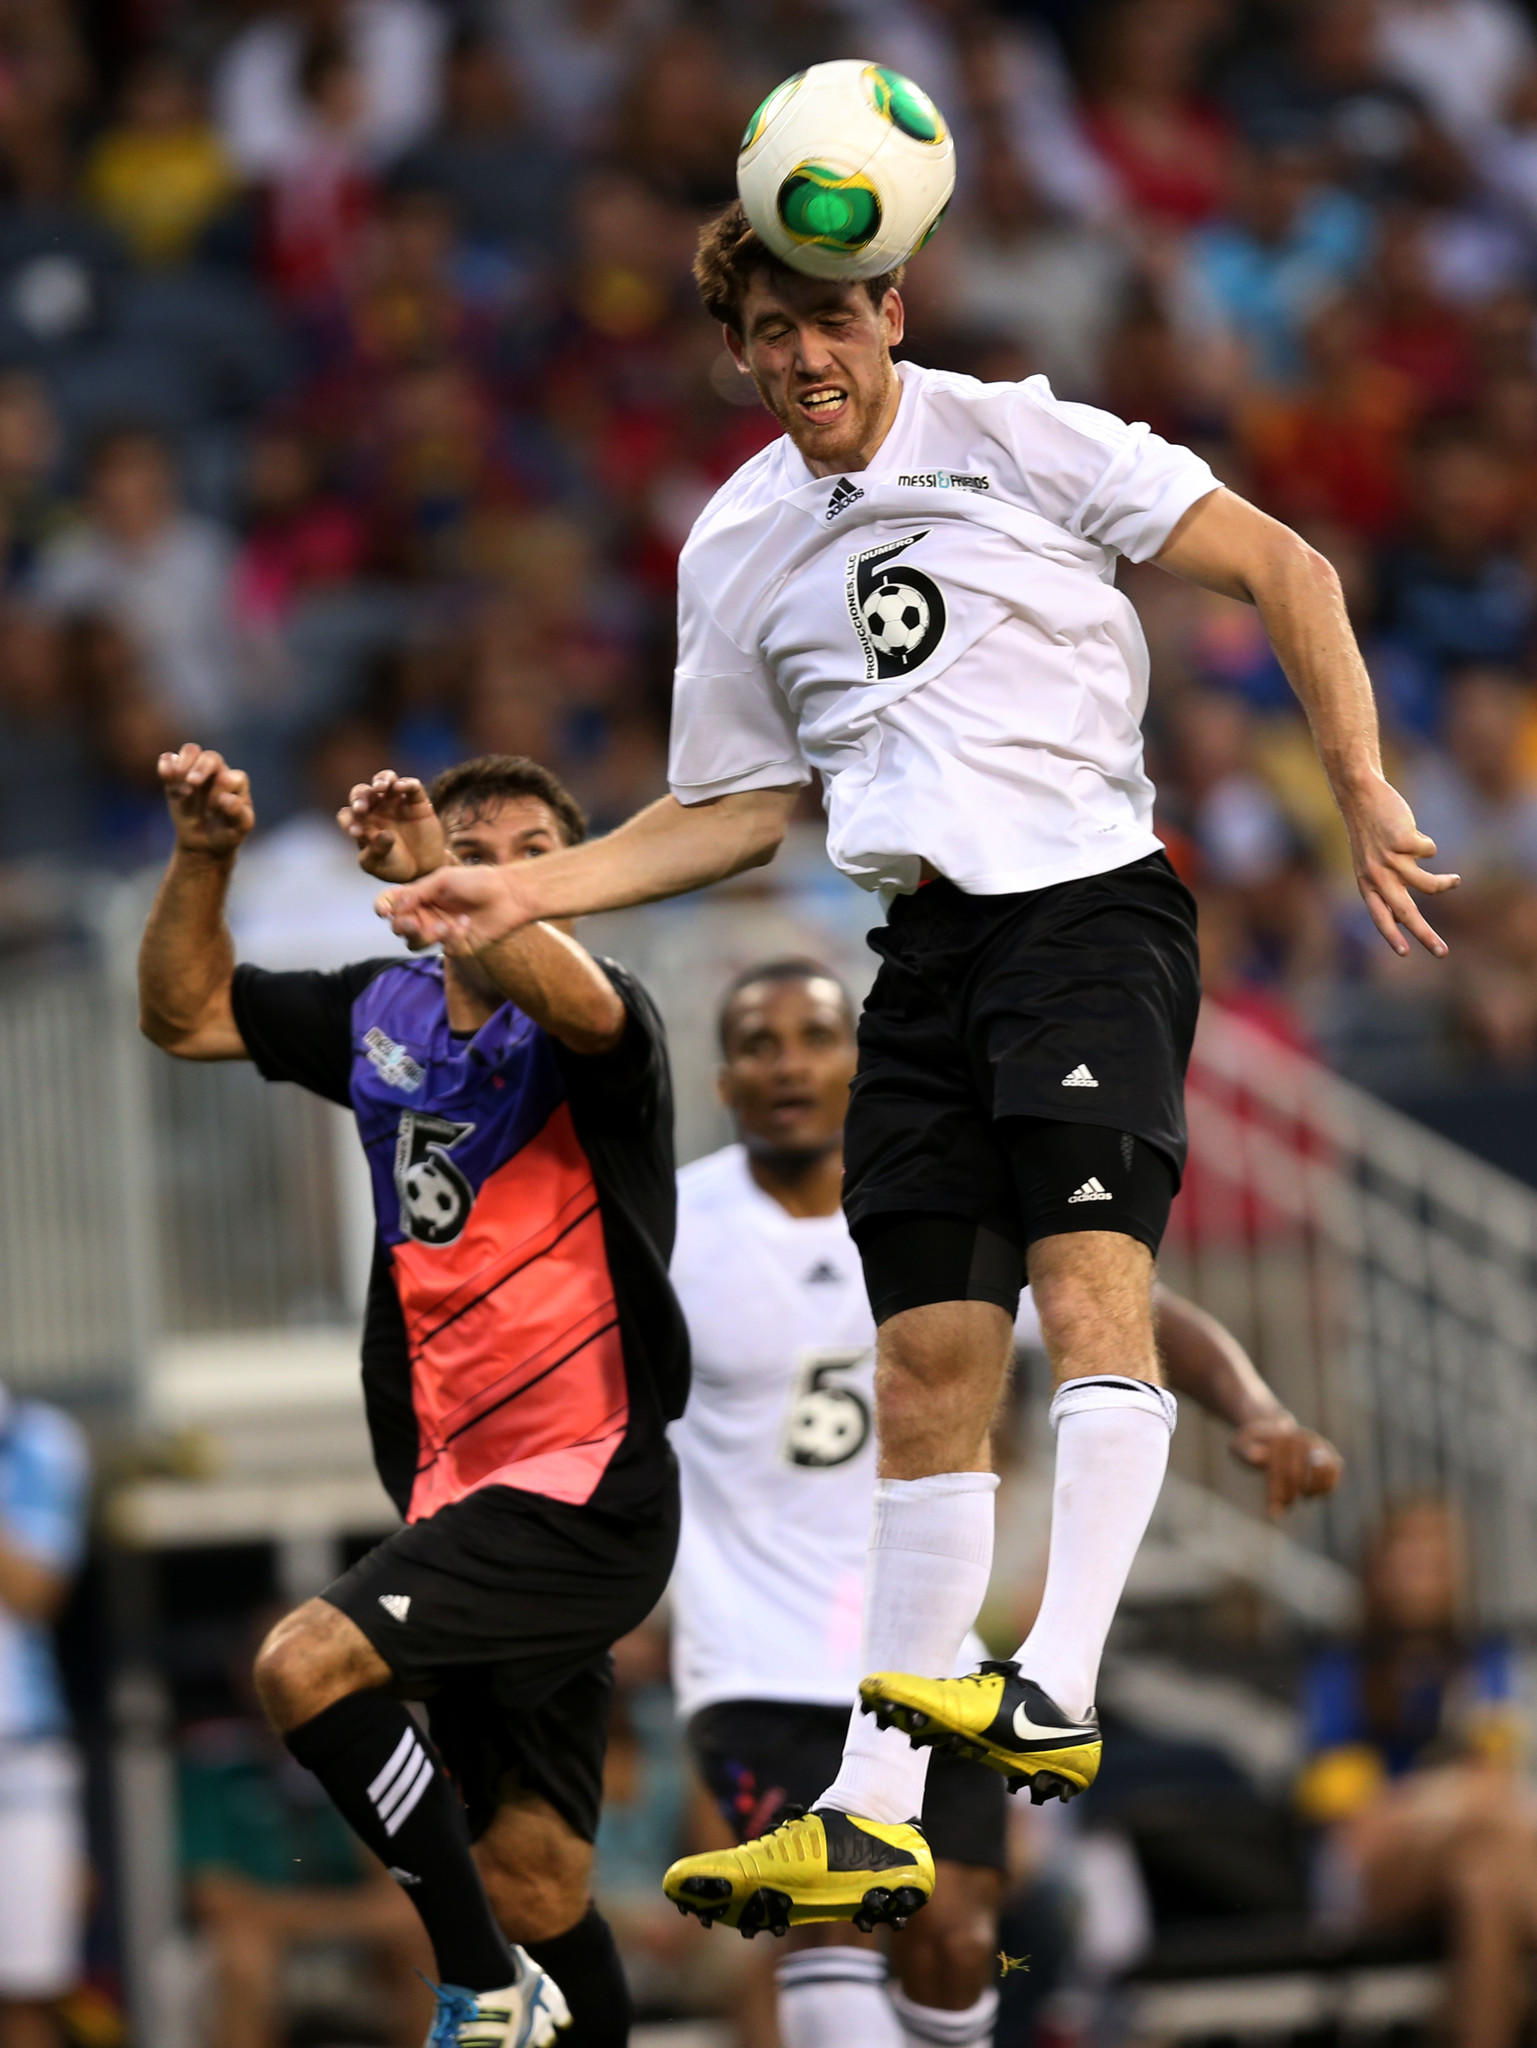 Rest of the World player Matt Eliason heads the ball during the Messi & Friends charity soccer game at Soldier Field.